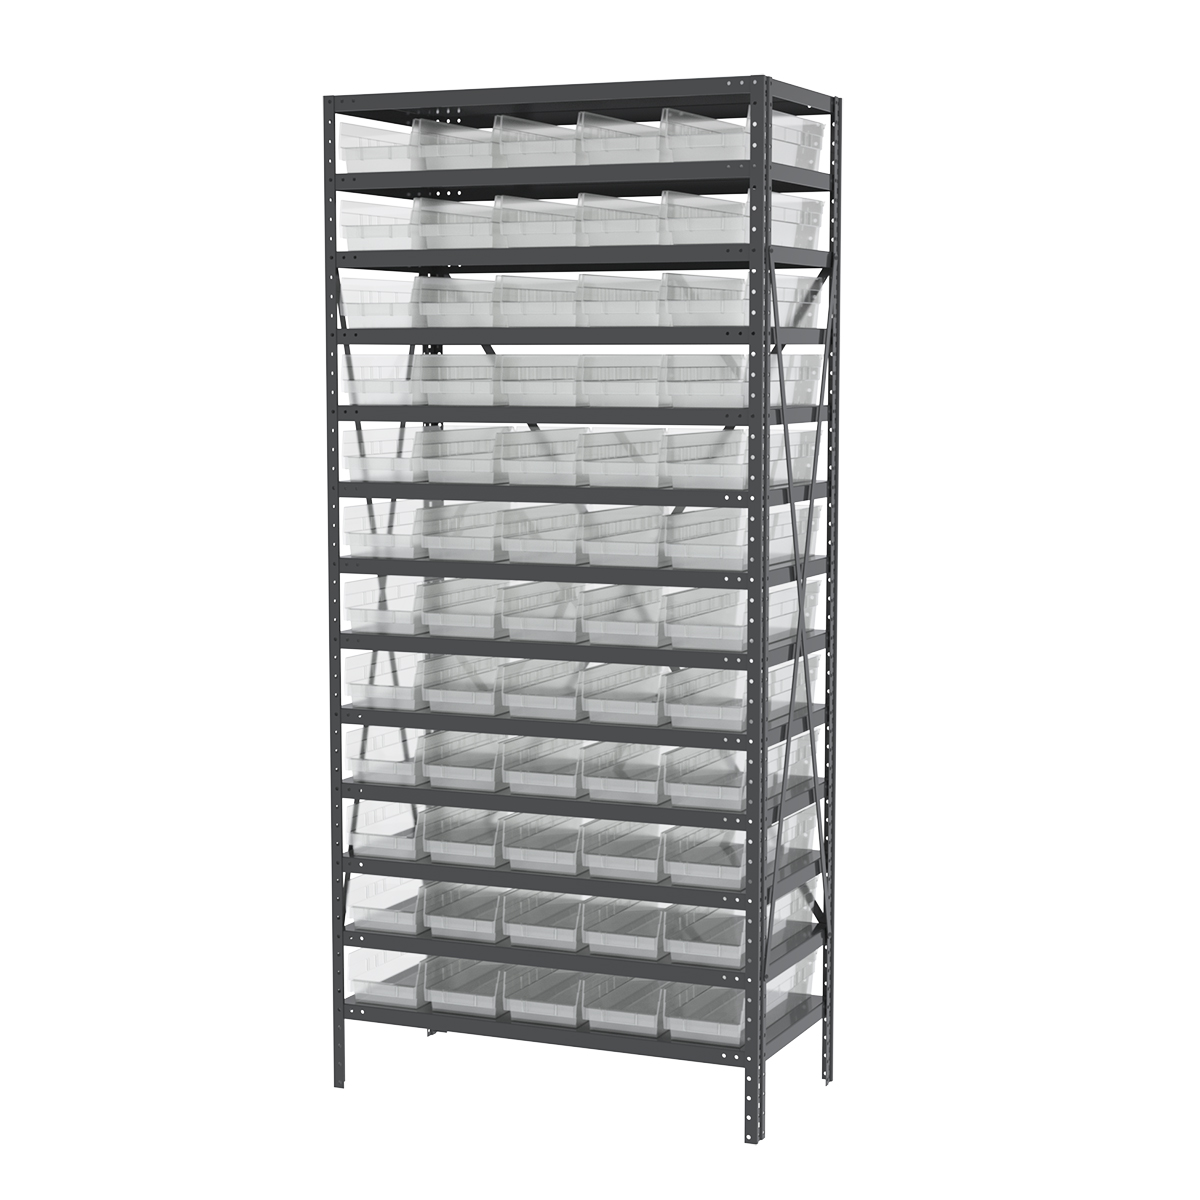 Steel Shelving Kit, 18x36x79, 60 Bins, Gray/Clear.  This item sold in carton quantities of 1.